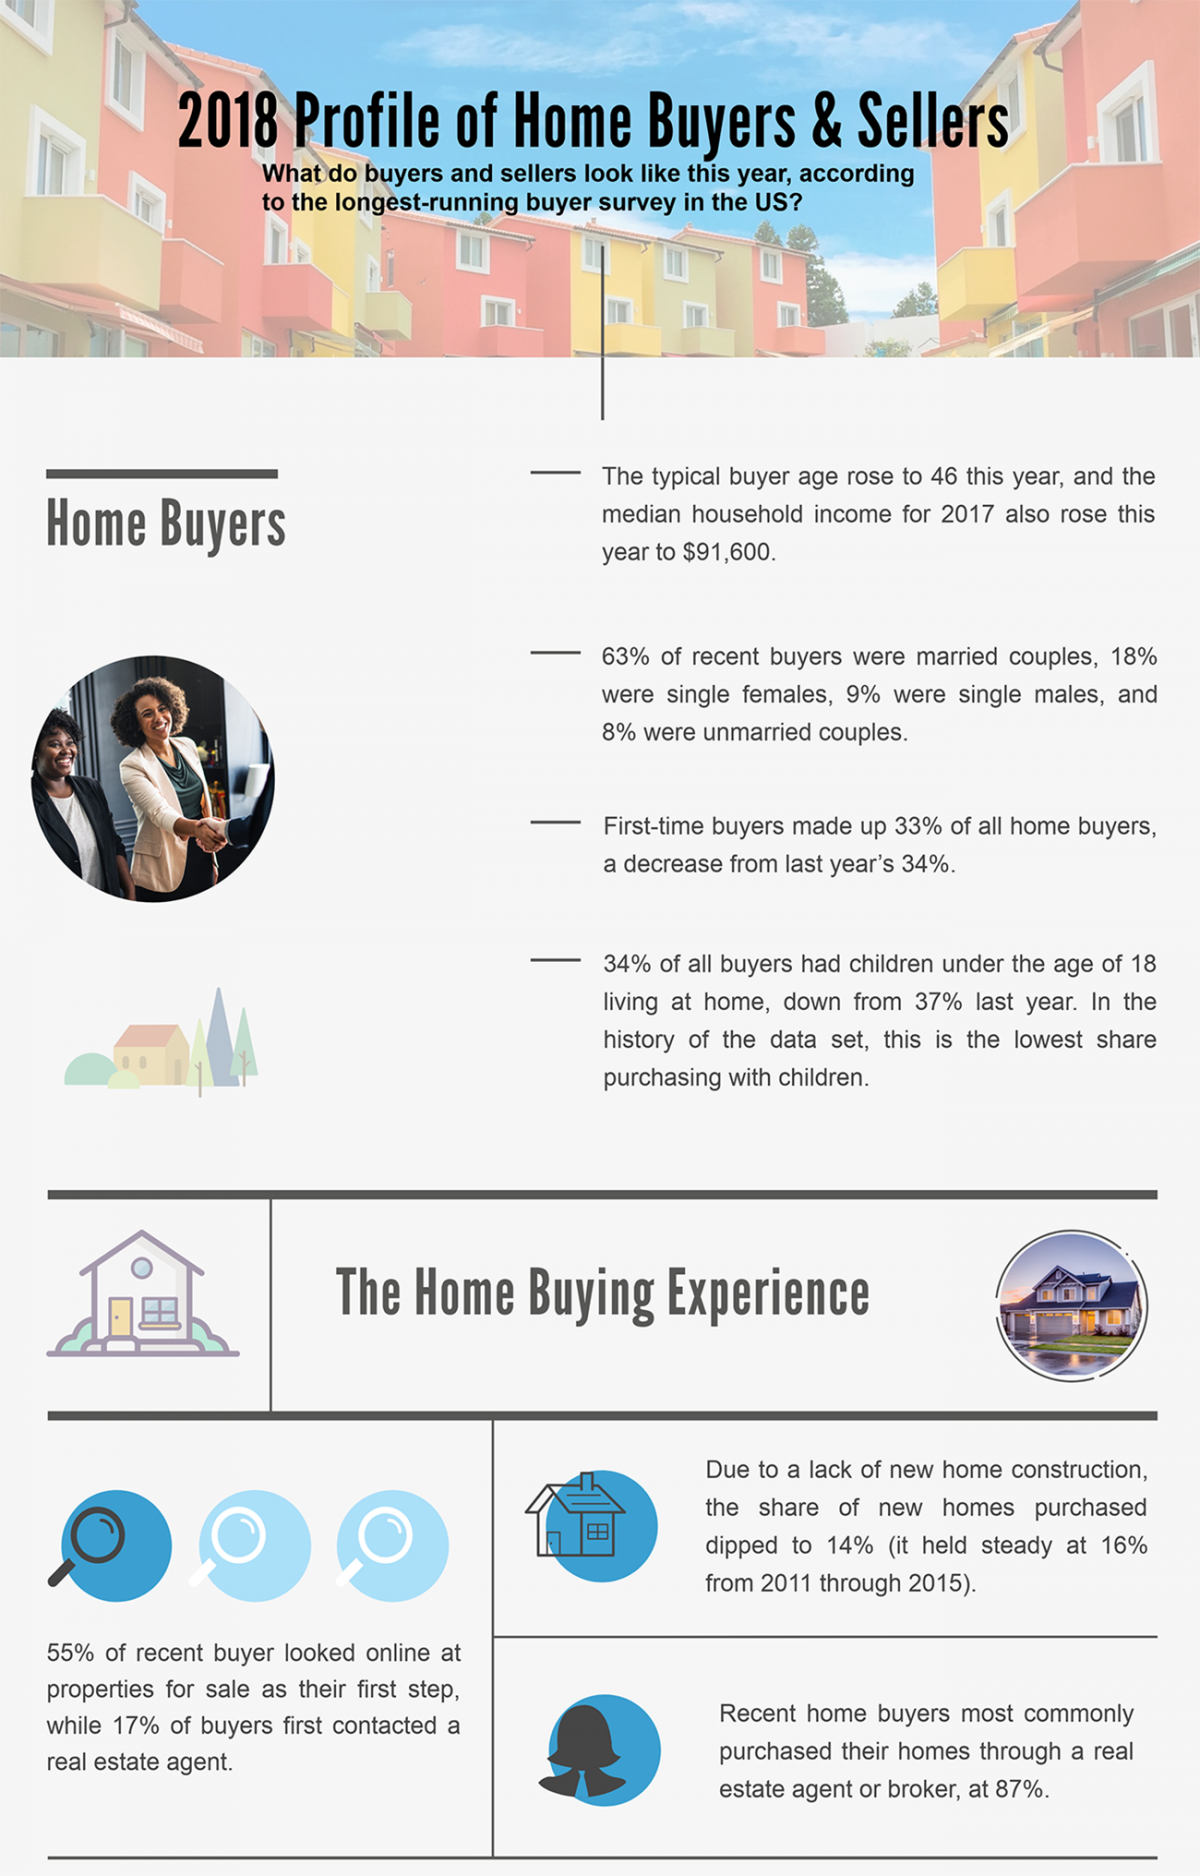 2018 Profile Of Home Buyers And Sellers Infographic National Association Of Realtors Real Estate Infographic Infographic Real Estate News